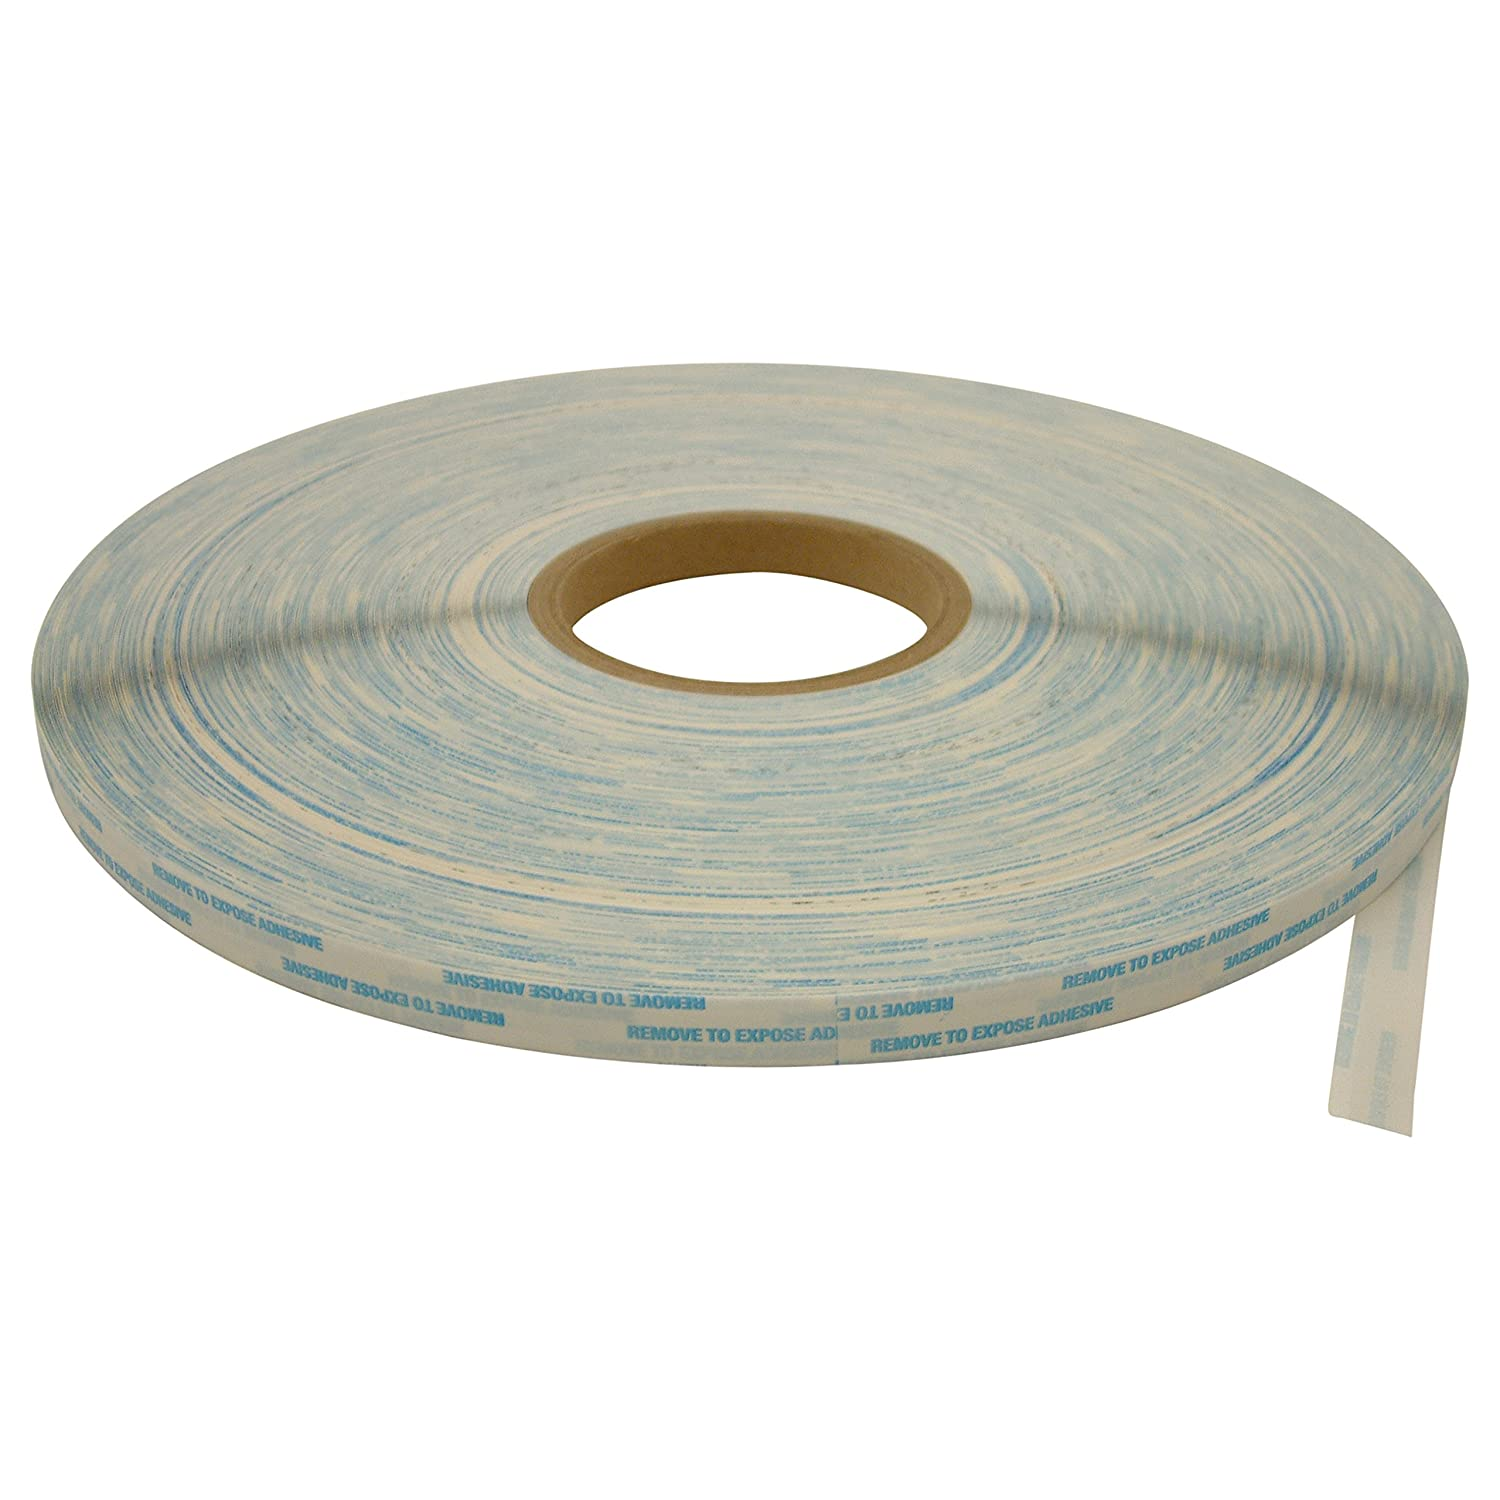 Ludlow M-Tak HI/LO Double Coated Removable/Permanent Tape: 1/2 in. x 433-1/3 yds. (Natural) by Ludlow B006VZBCIM